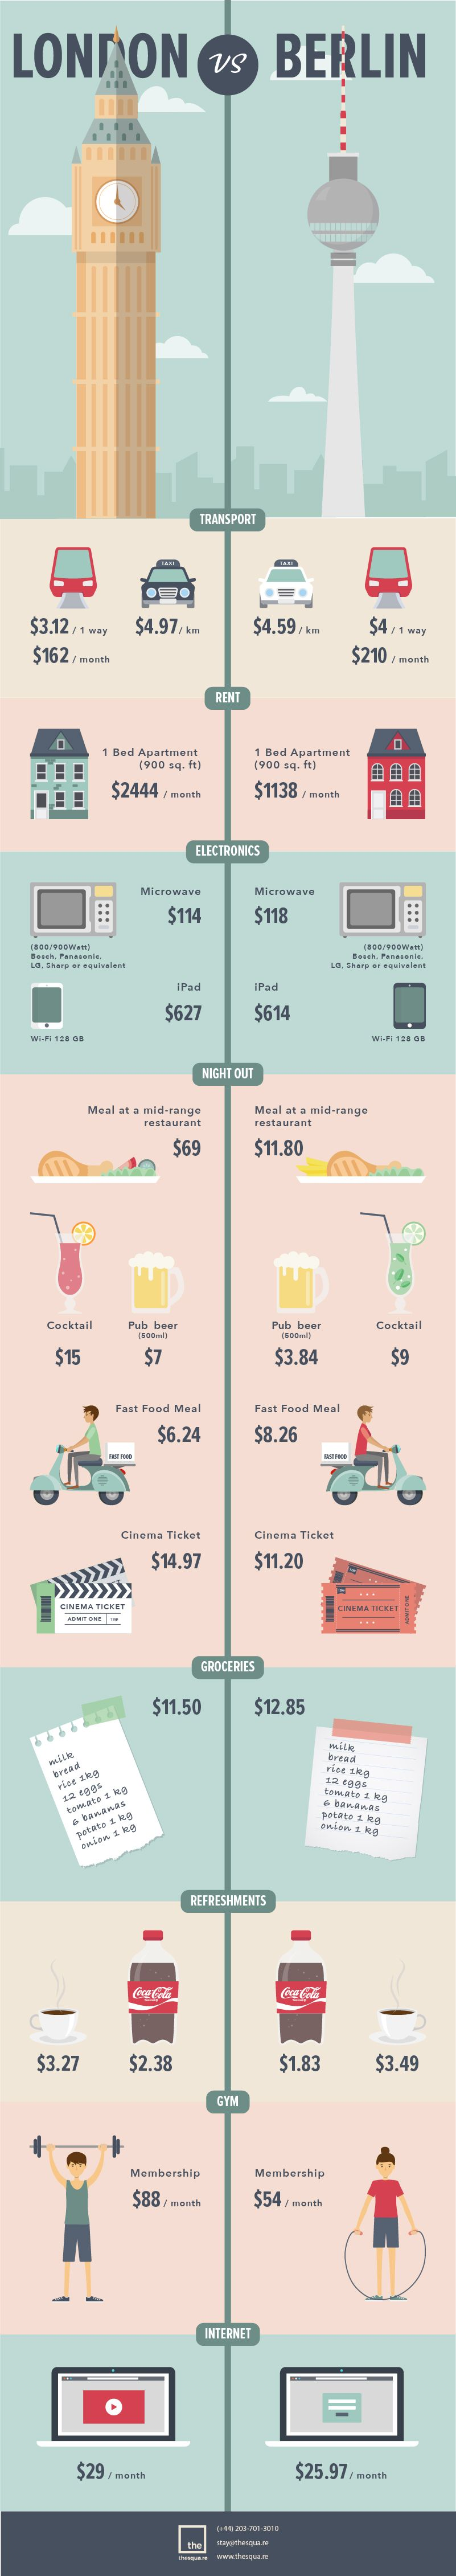 A comparison of the cost of living in #london & #Berlin #infographic ...